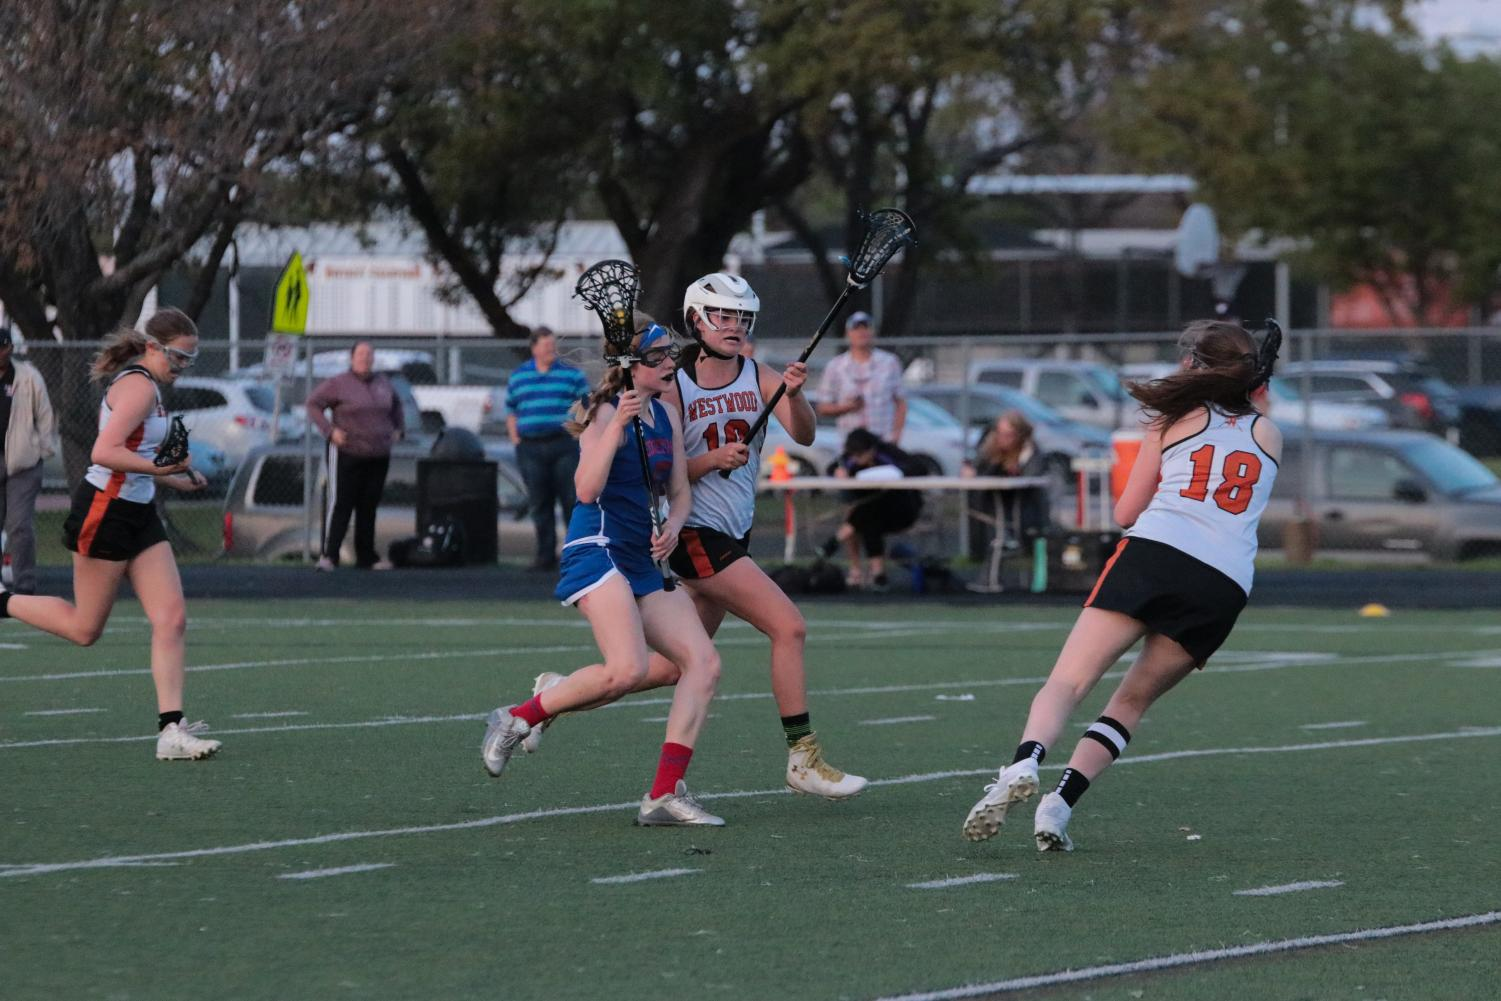 Varsity+Girls%27+Lacrosse+Defeathers+Eagles+11-7